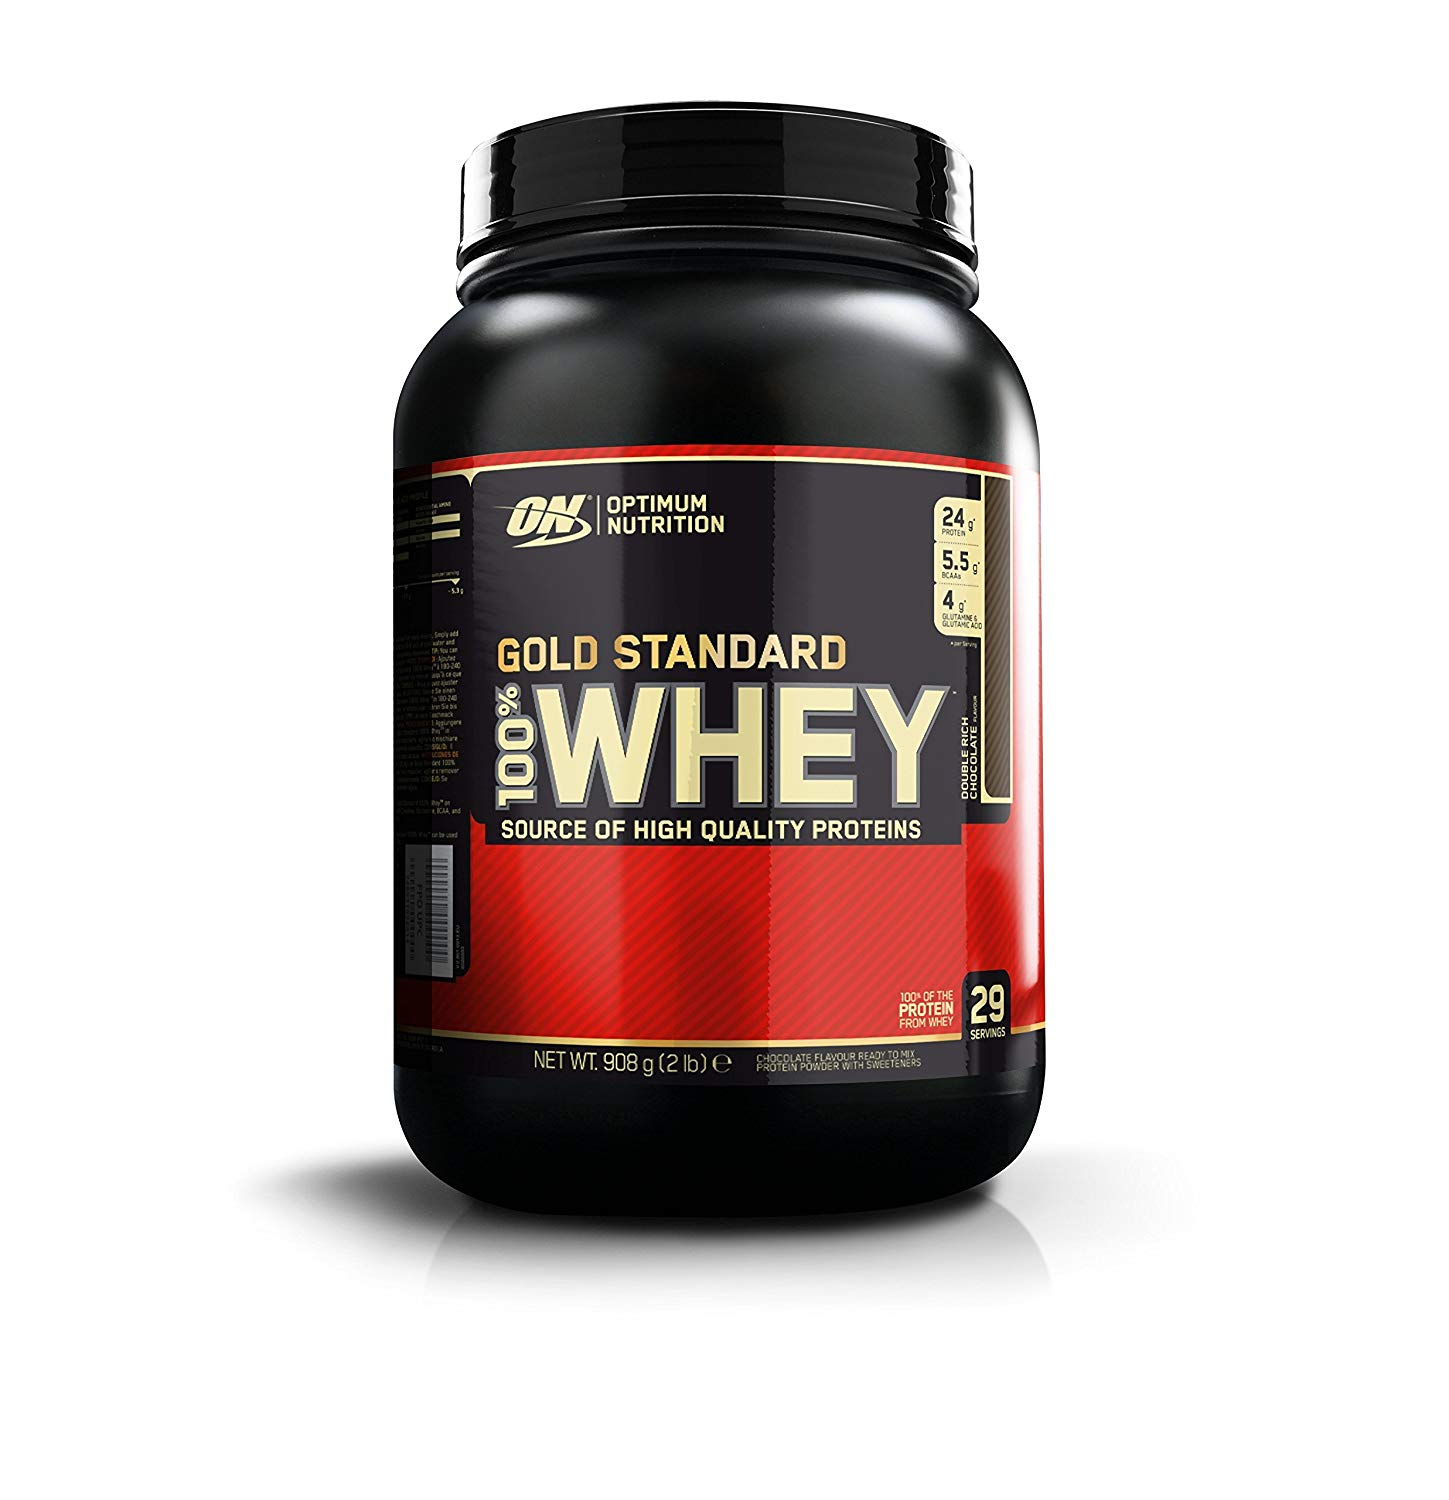 Optimum Nutrition Gold Standard Whey Protein Powder, 908 g